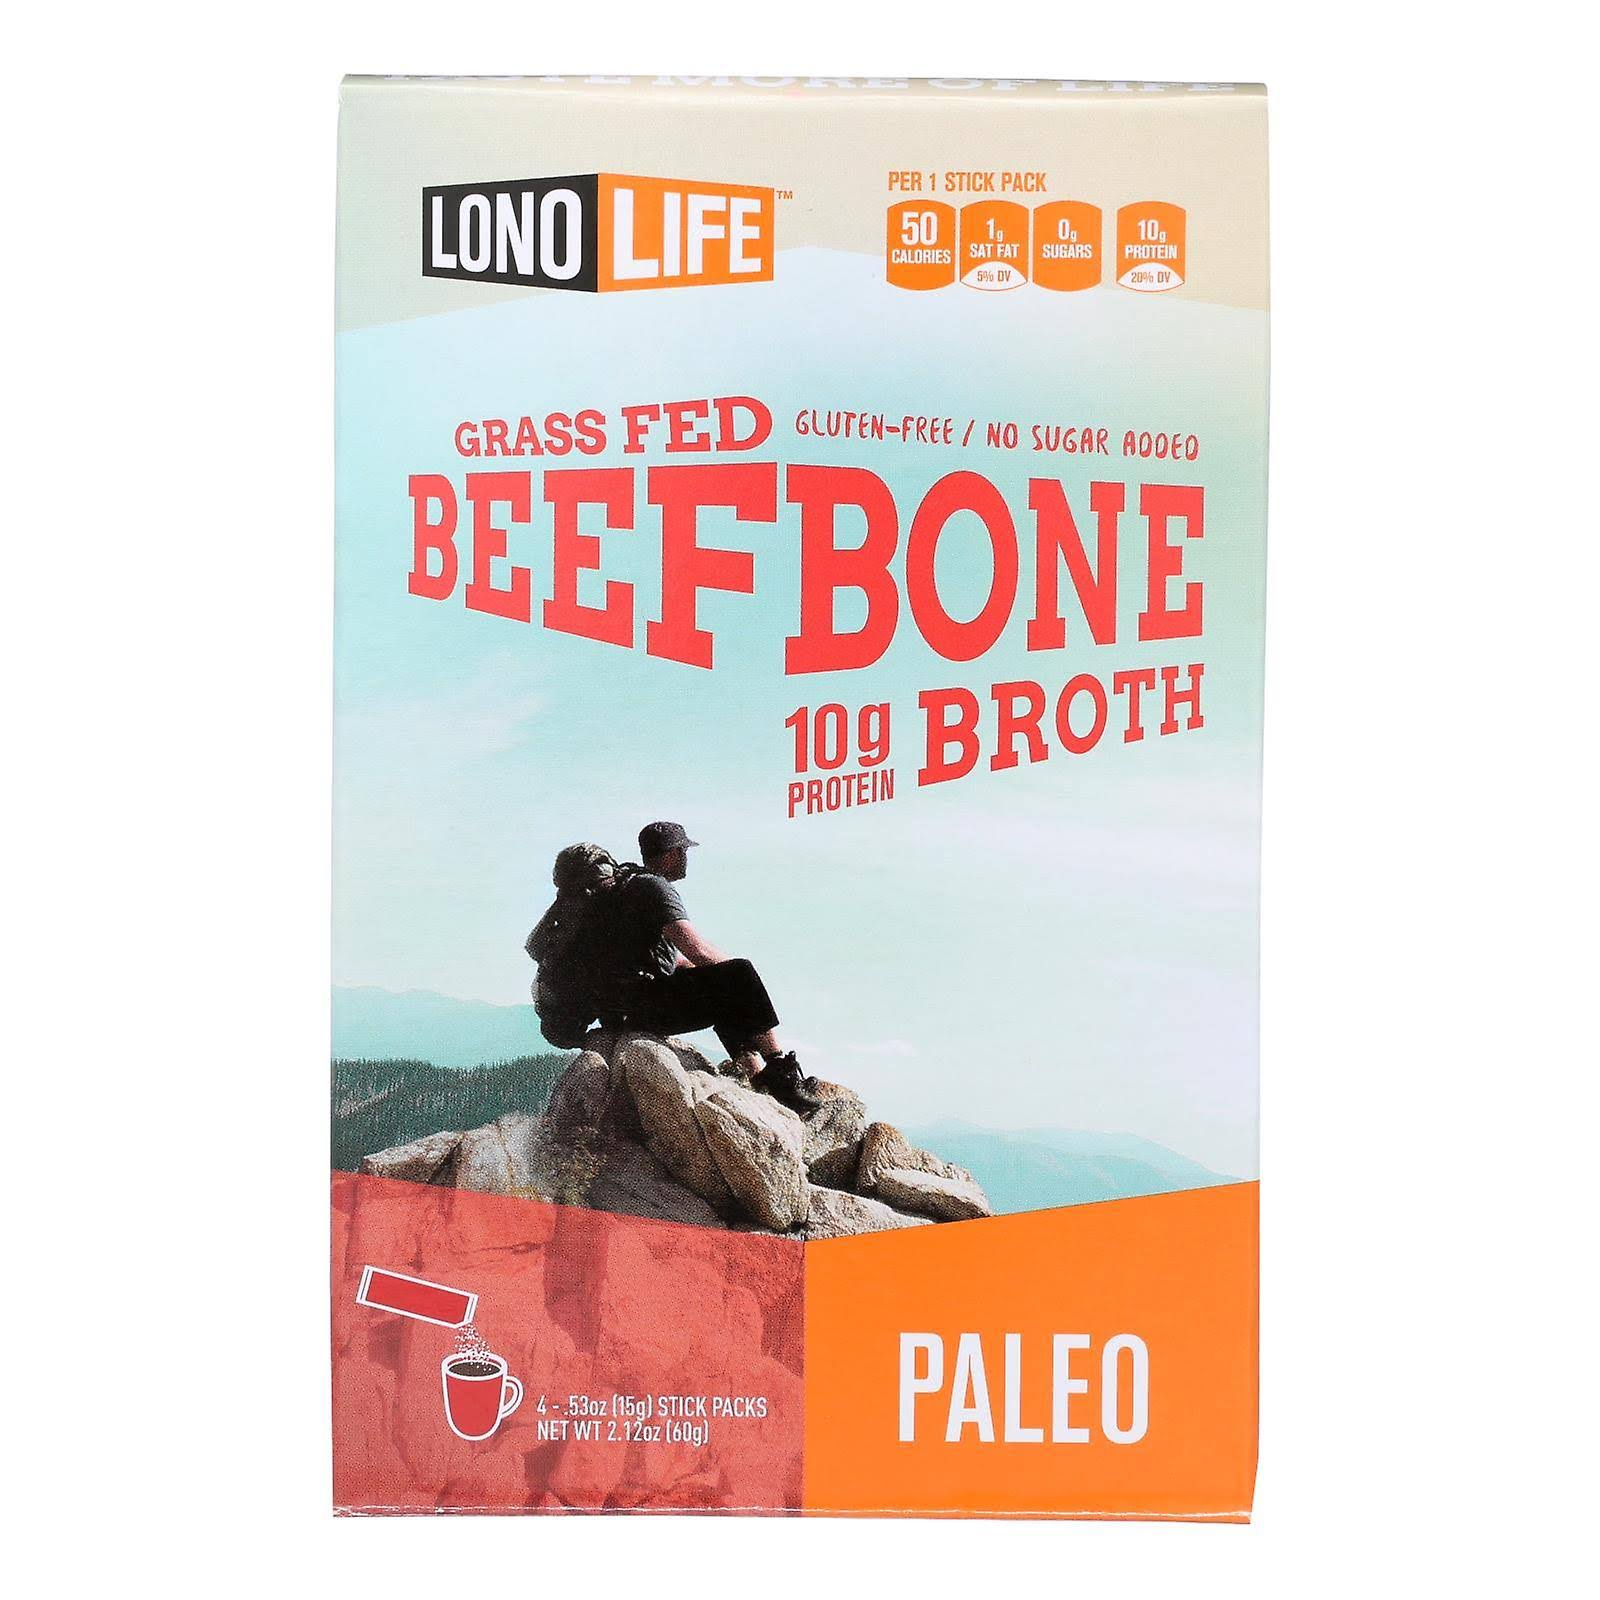 LonoLife Grass Fed Paleo Bone Broth Beef 4 Stick Pack(s)